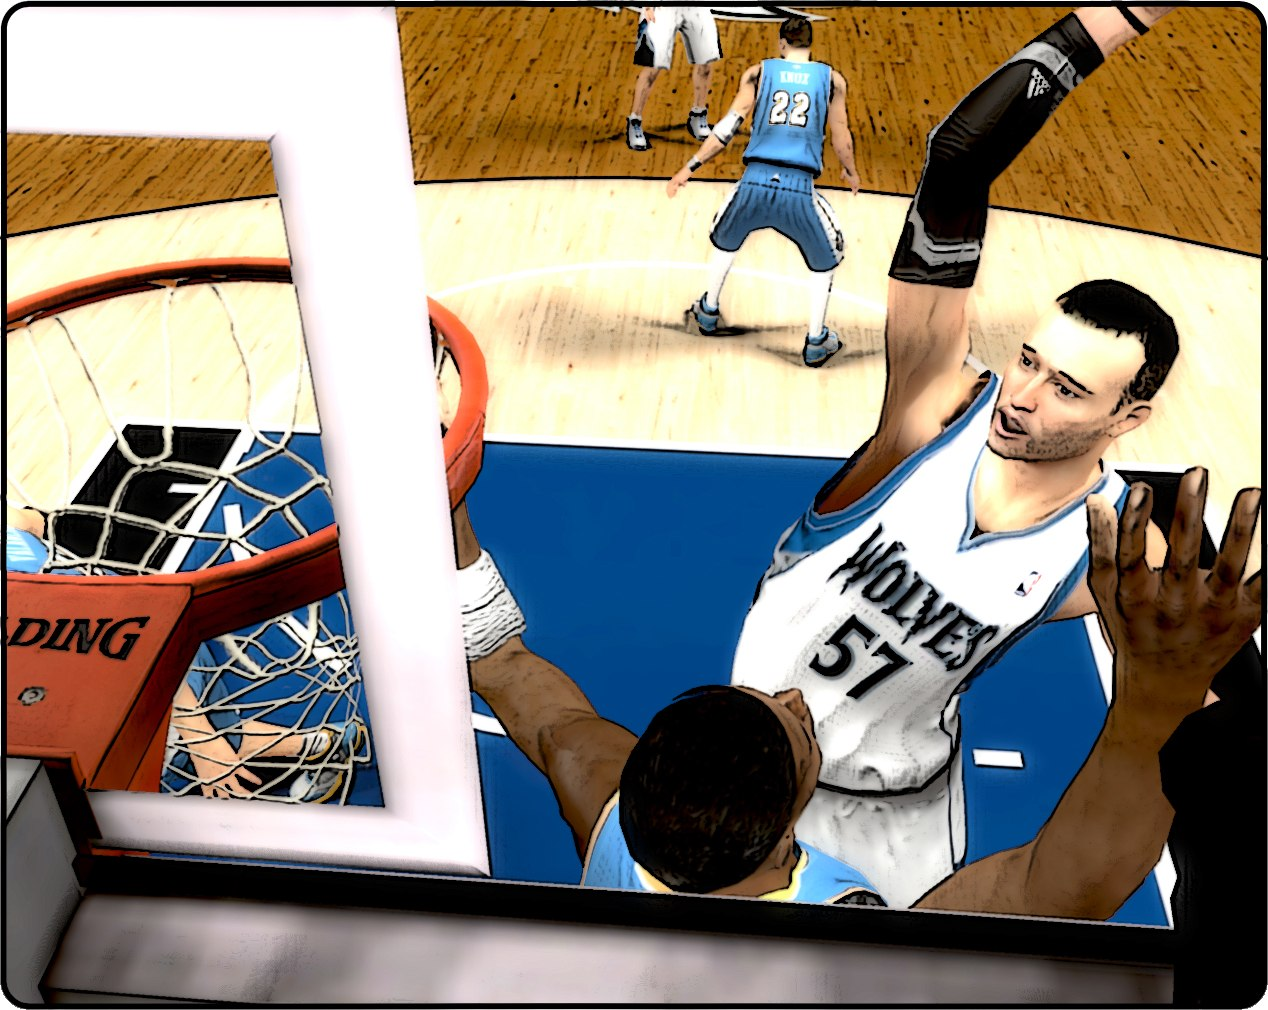 Wonderful camera NBA2K13